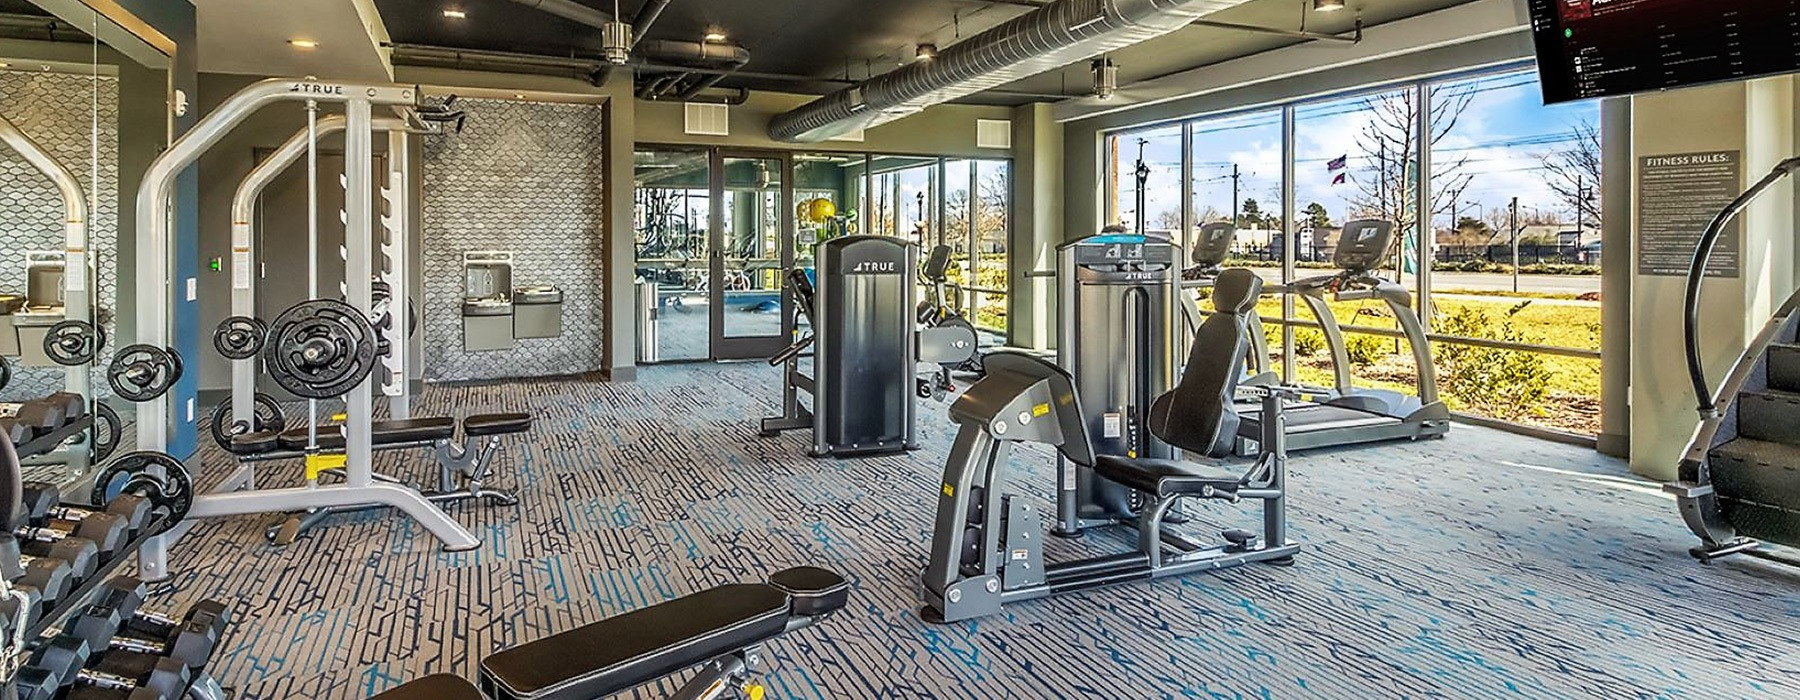 spacious fitness center with equipment and gorgeous views of area through wall-to-wall style windows